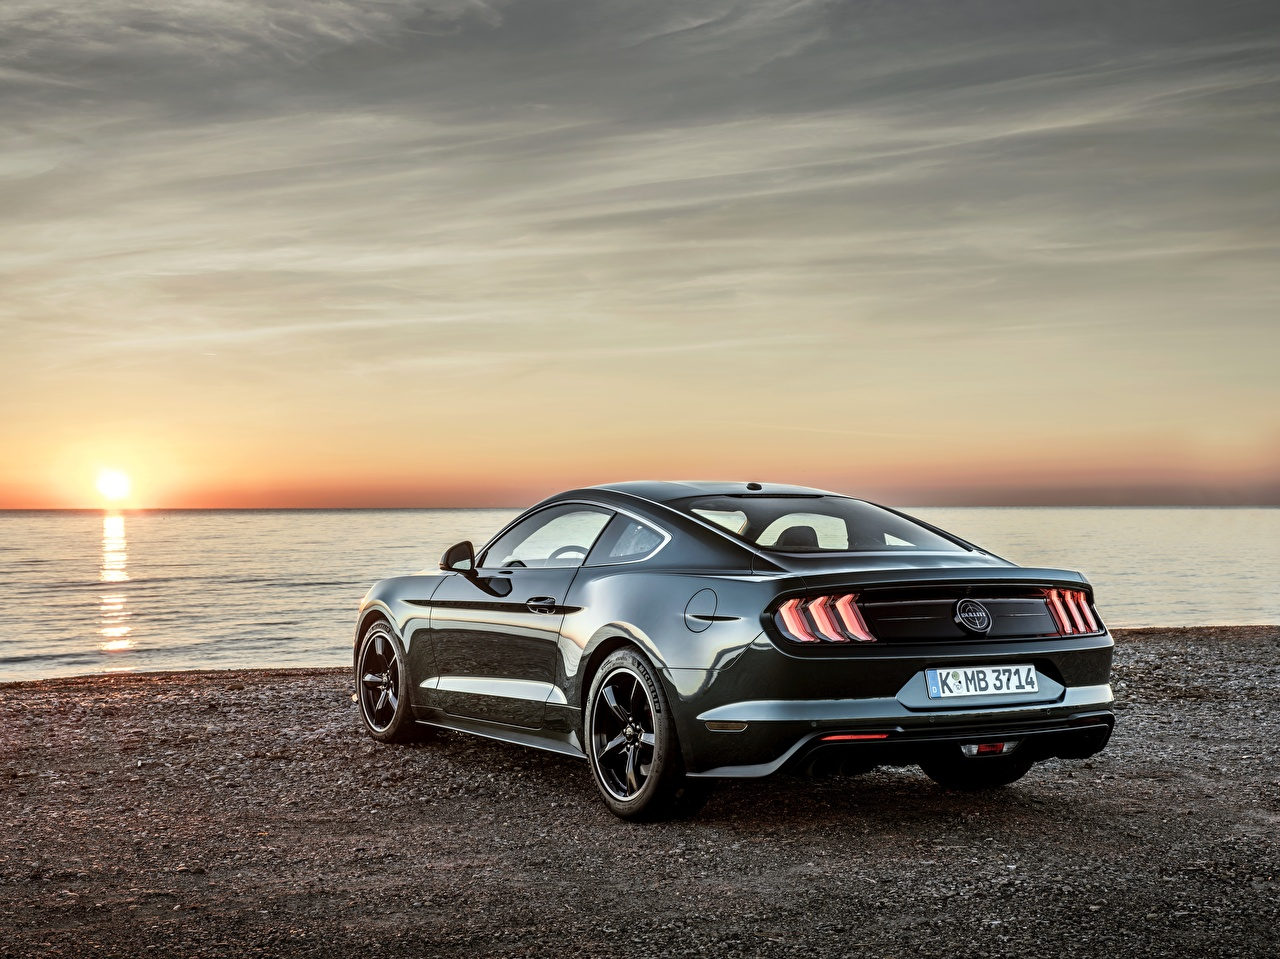 Image Ford 2018 Bullitt Mustang sunrise and sunset auto Metallic Back view Sunrises and sunsets Cars automobile